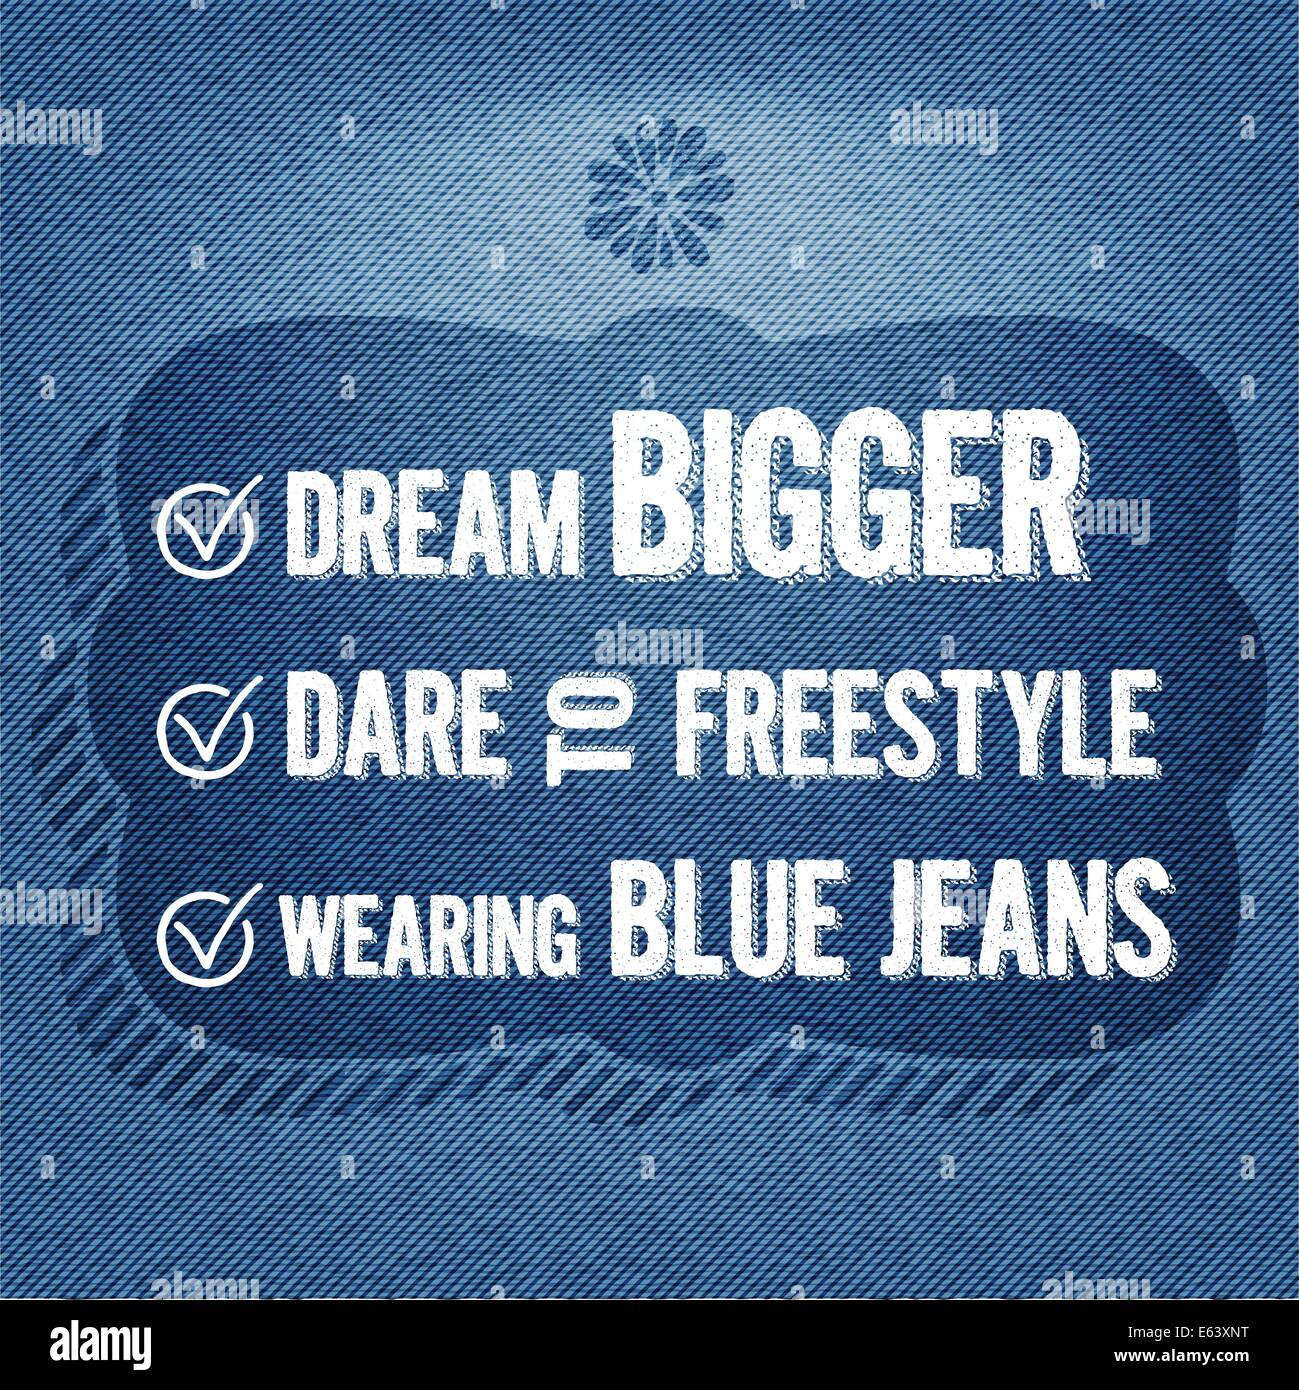 'Dream bigger, dare to freestyle, wearing blue jeans', vector Quote Typographic Background - Stock Image